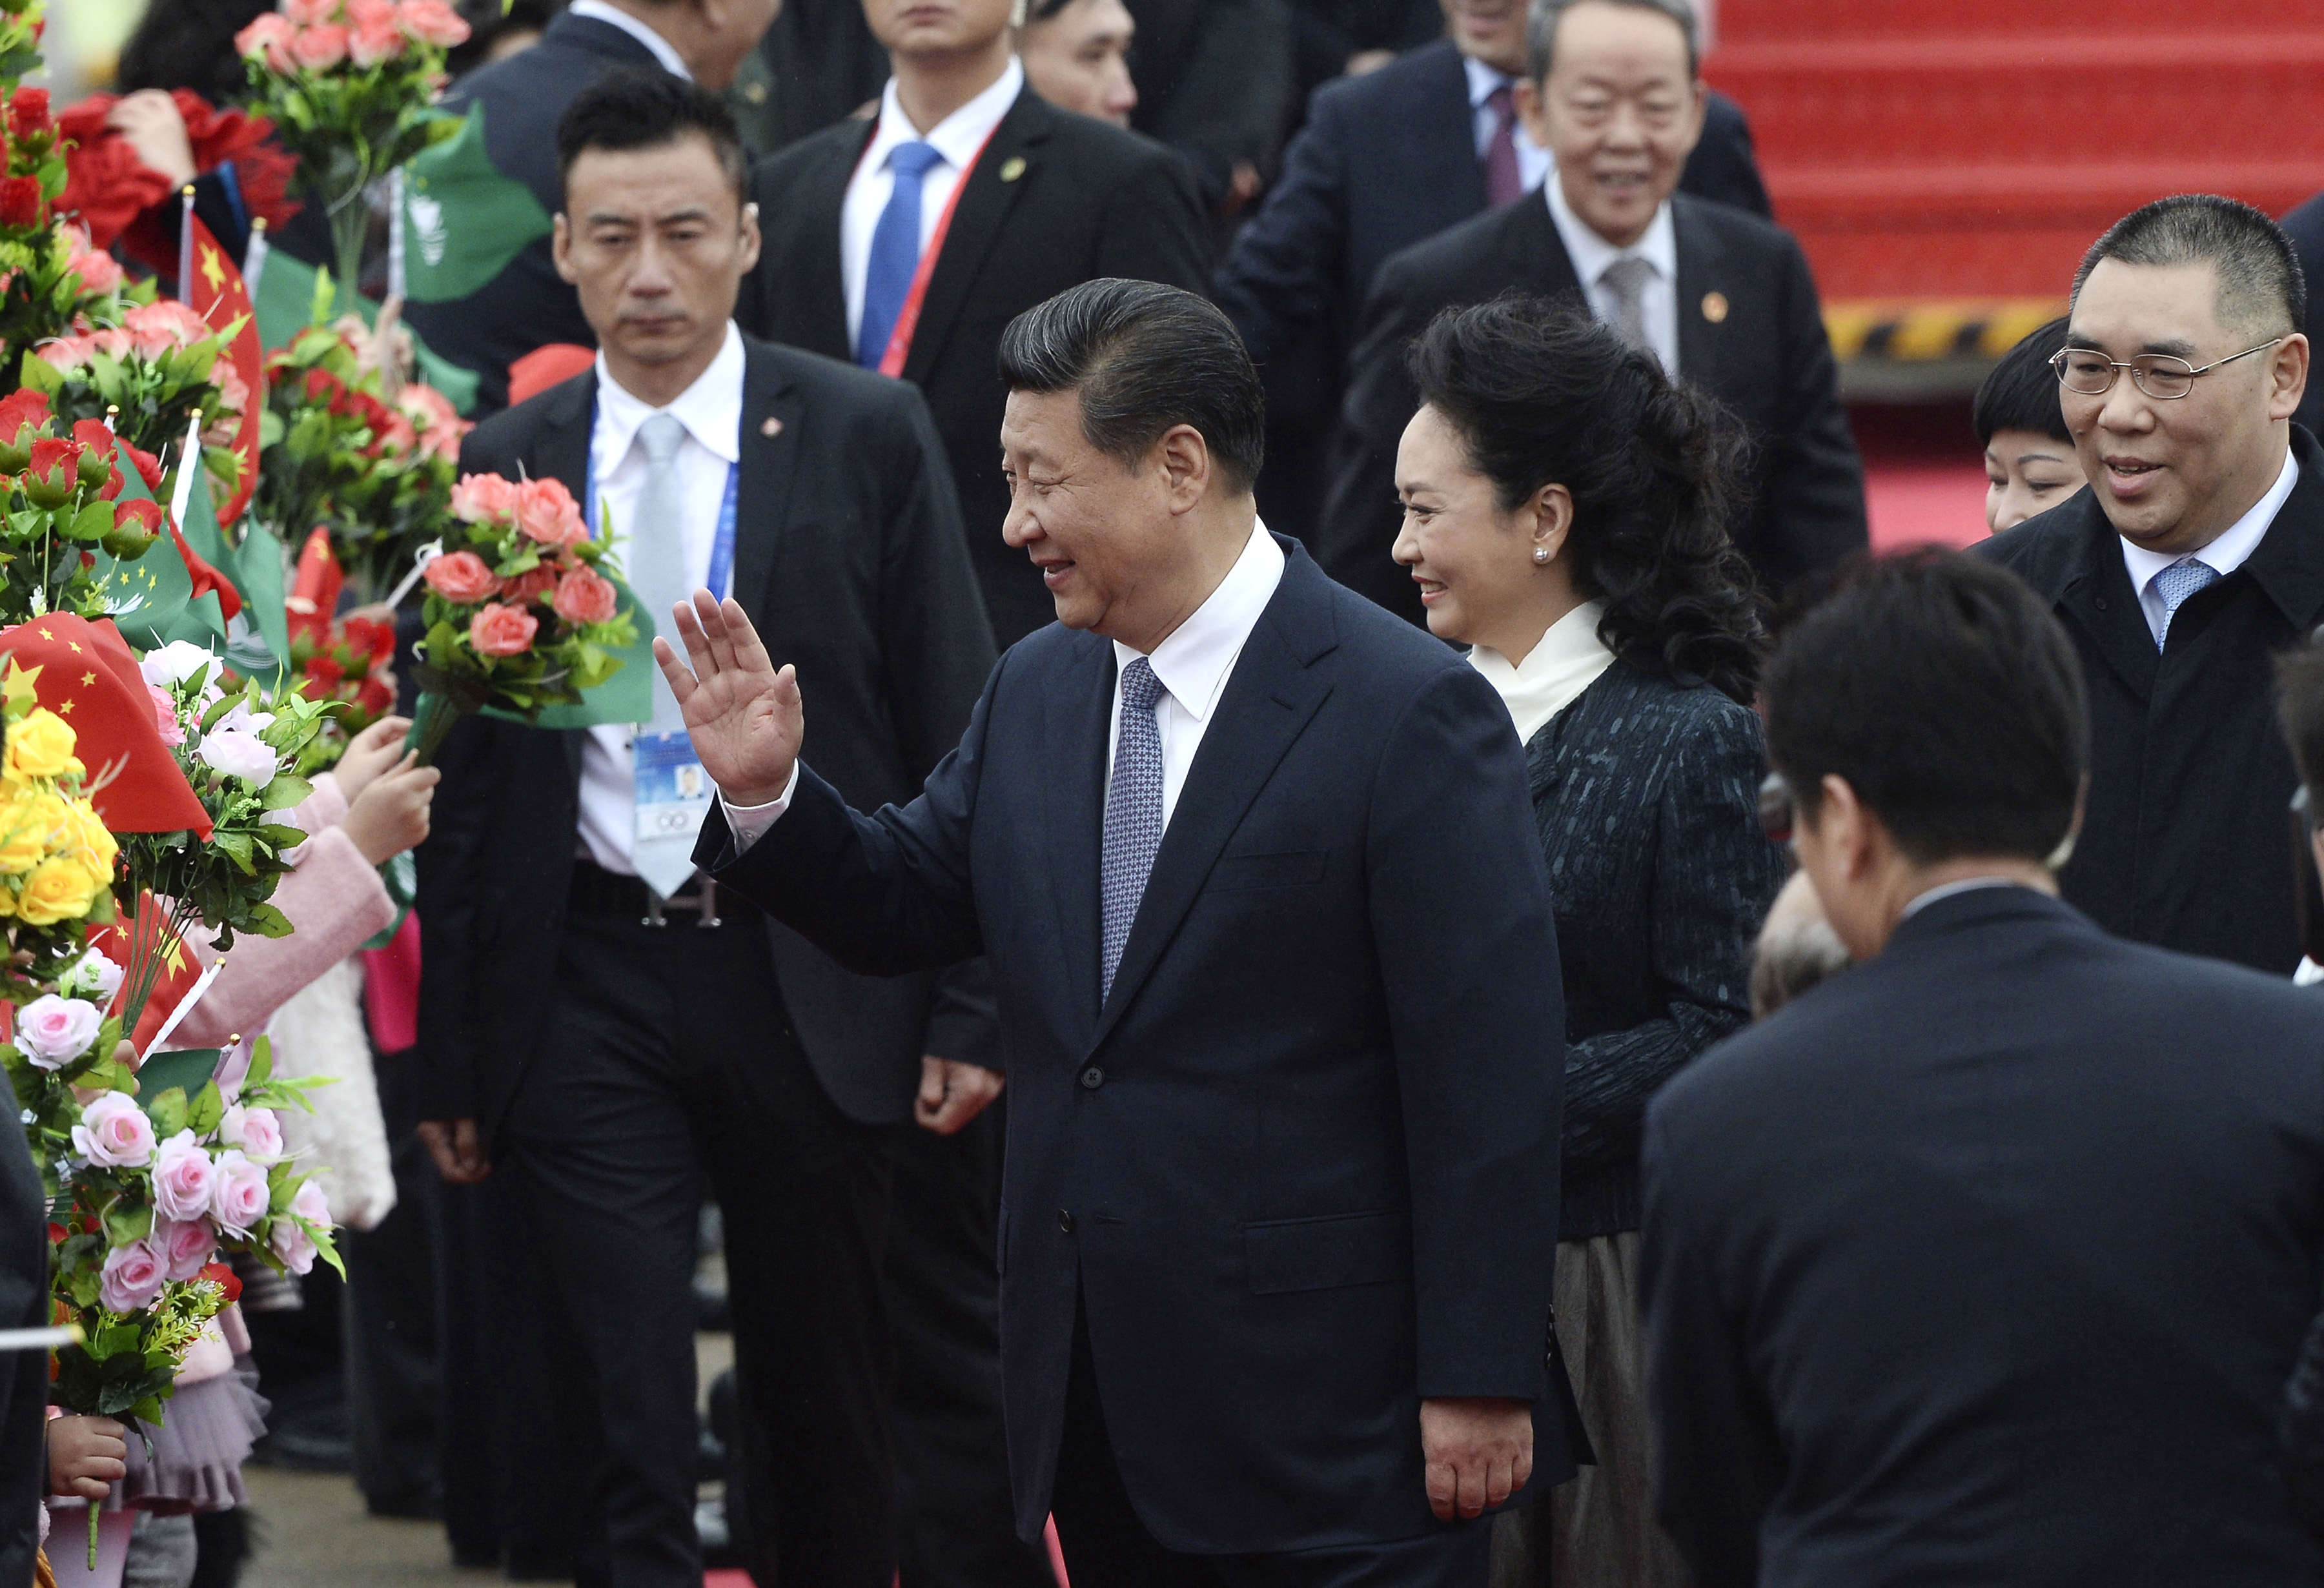 In this photo provided by China's Xinhua News Agency, Chinese President Xi Jinping, center, and his wife Peng Liyuan, center right,  wave as they arrive at the international airport in Macau on Dec. 19, 2014